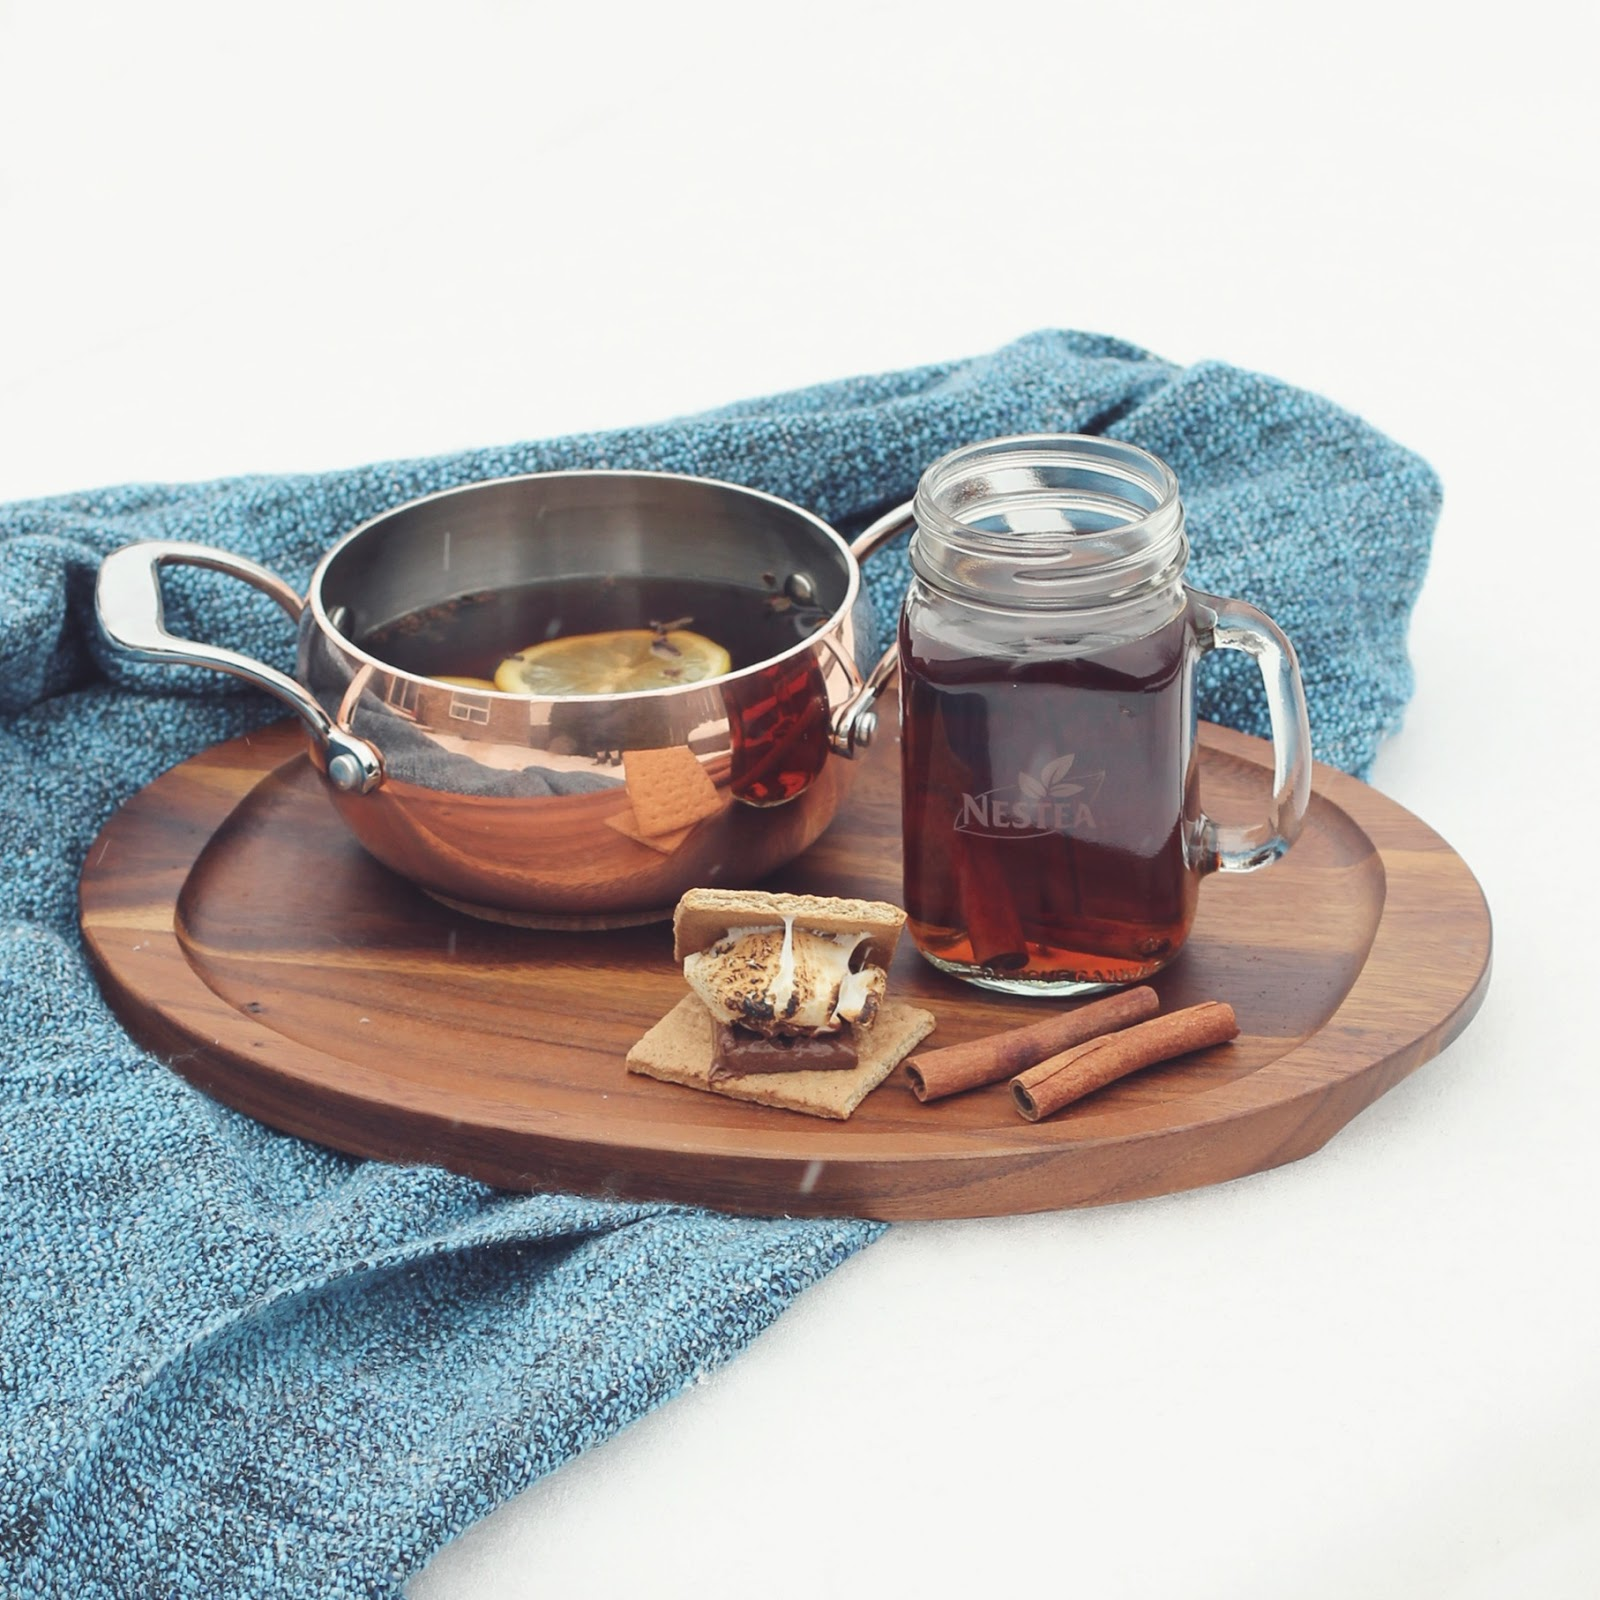 Mulled-Currant-Tea-Nestea